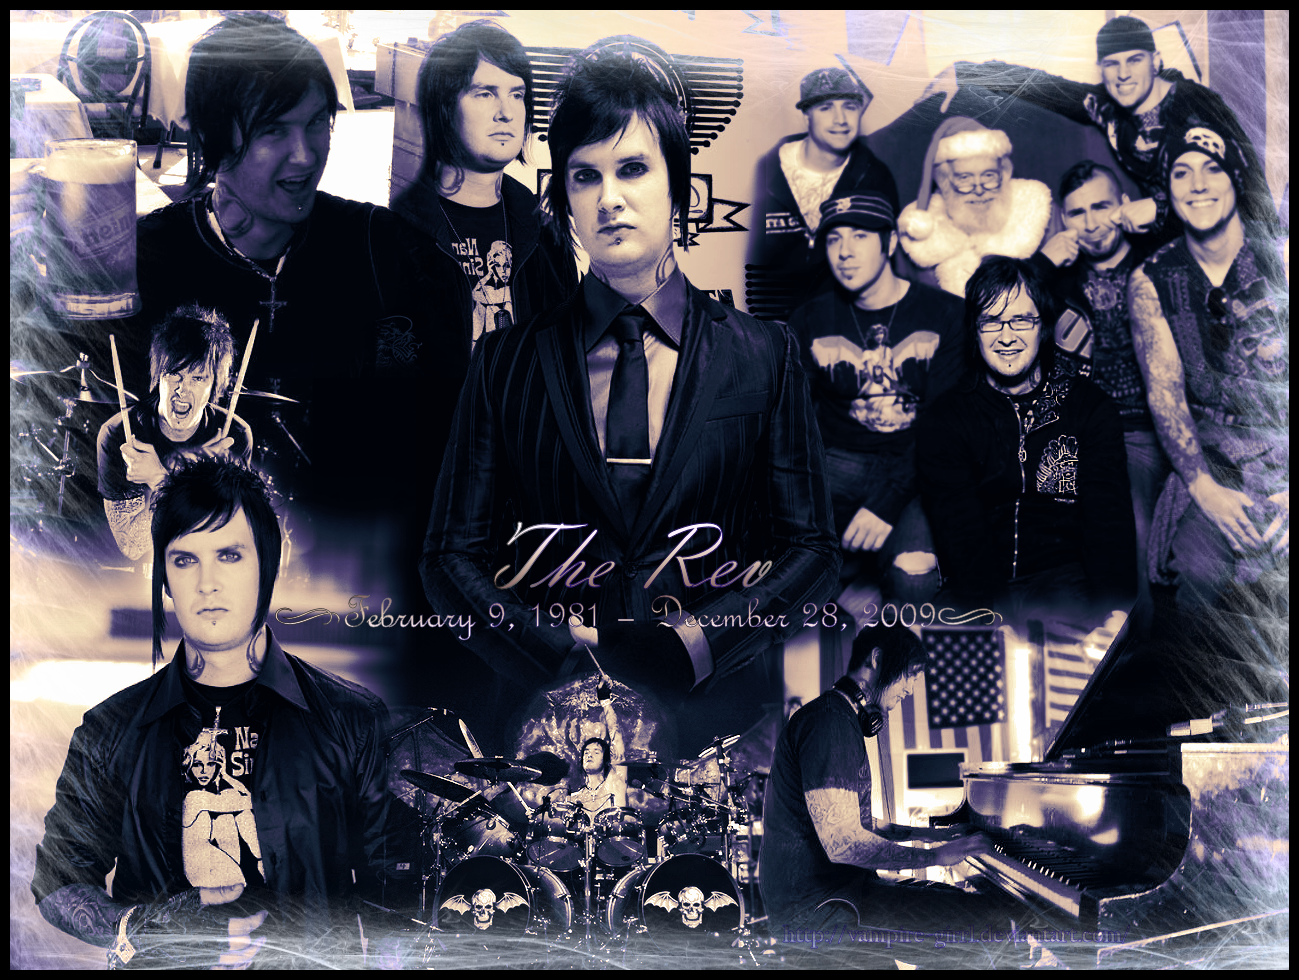 the rev images Rev \m HD wallpaper and background photos 1299x980